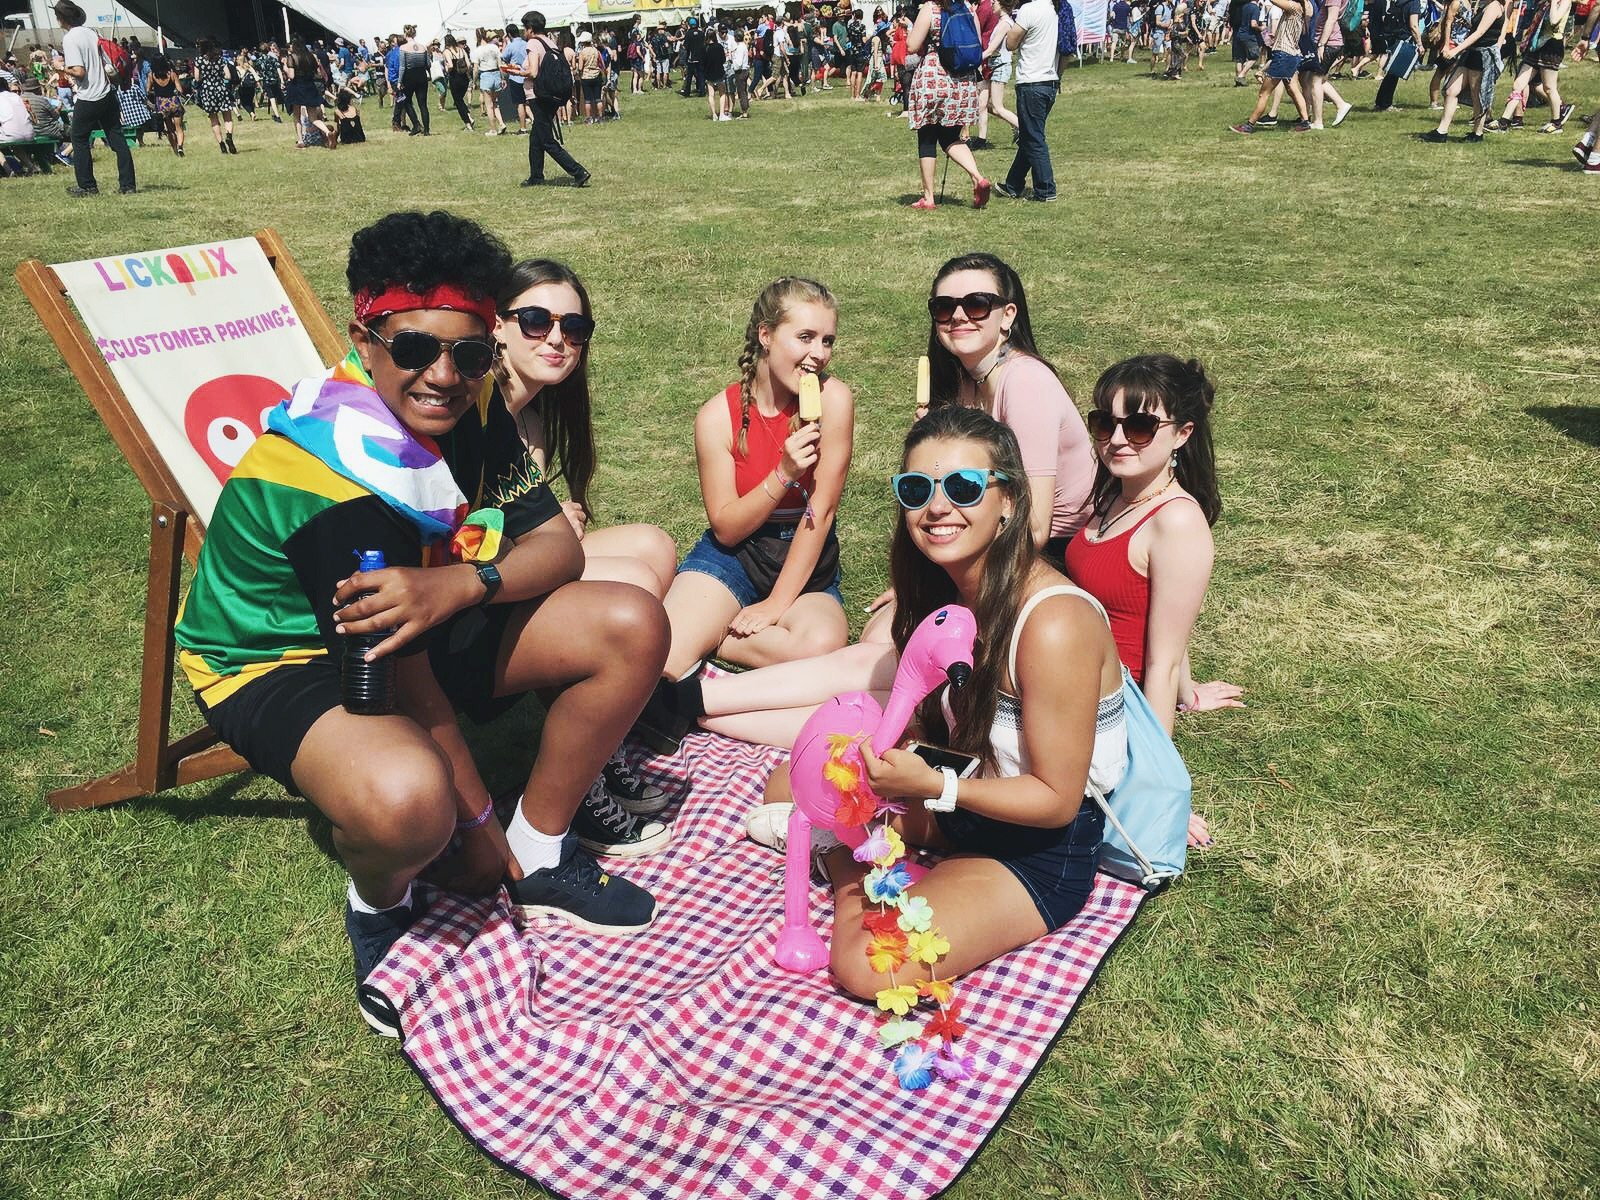 Some happy customers enjoying the warm sunny days at the festival